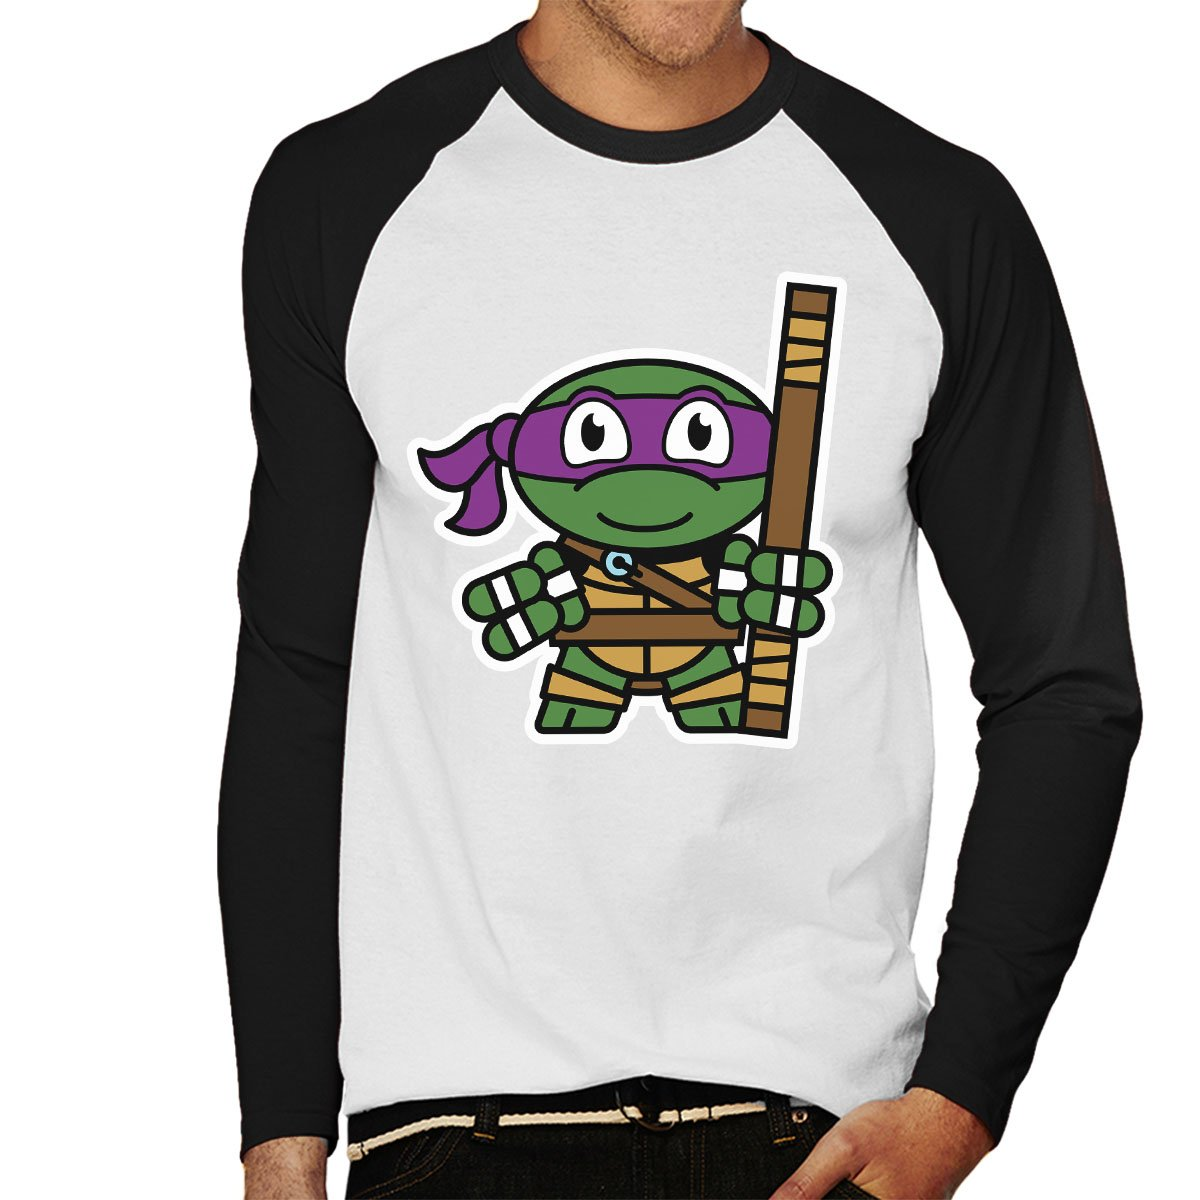 Mitesized Donatello Teenage Mutant Ninja Turtles Mens ...